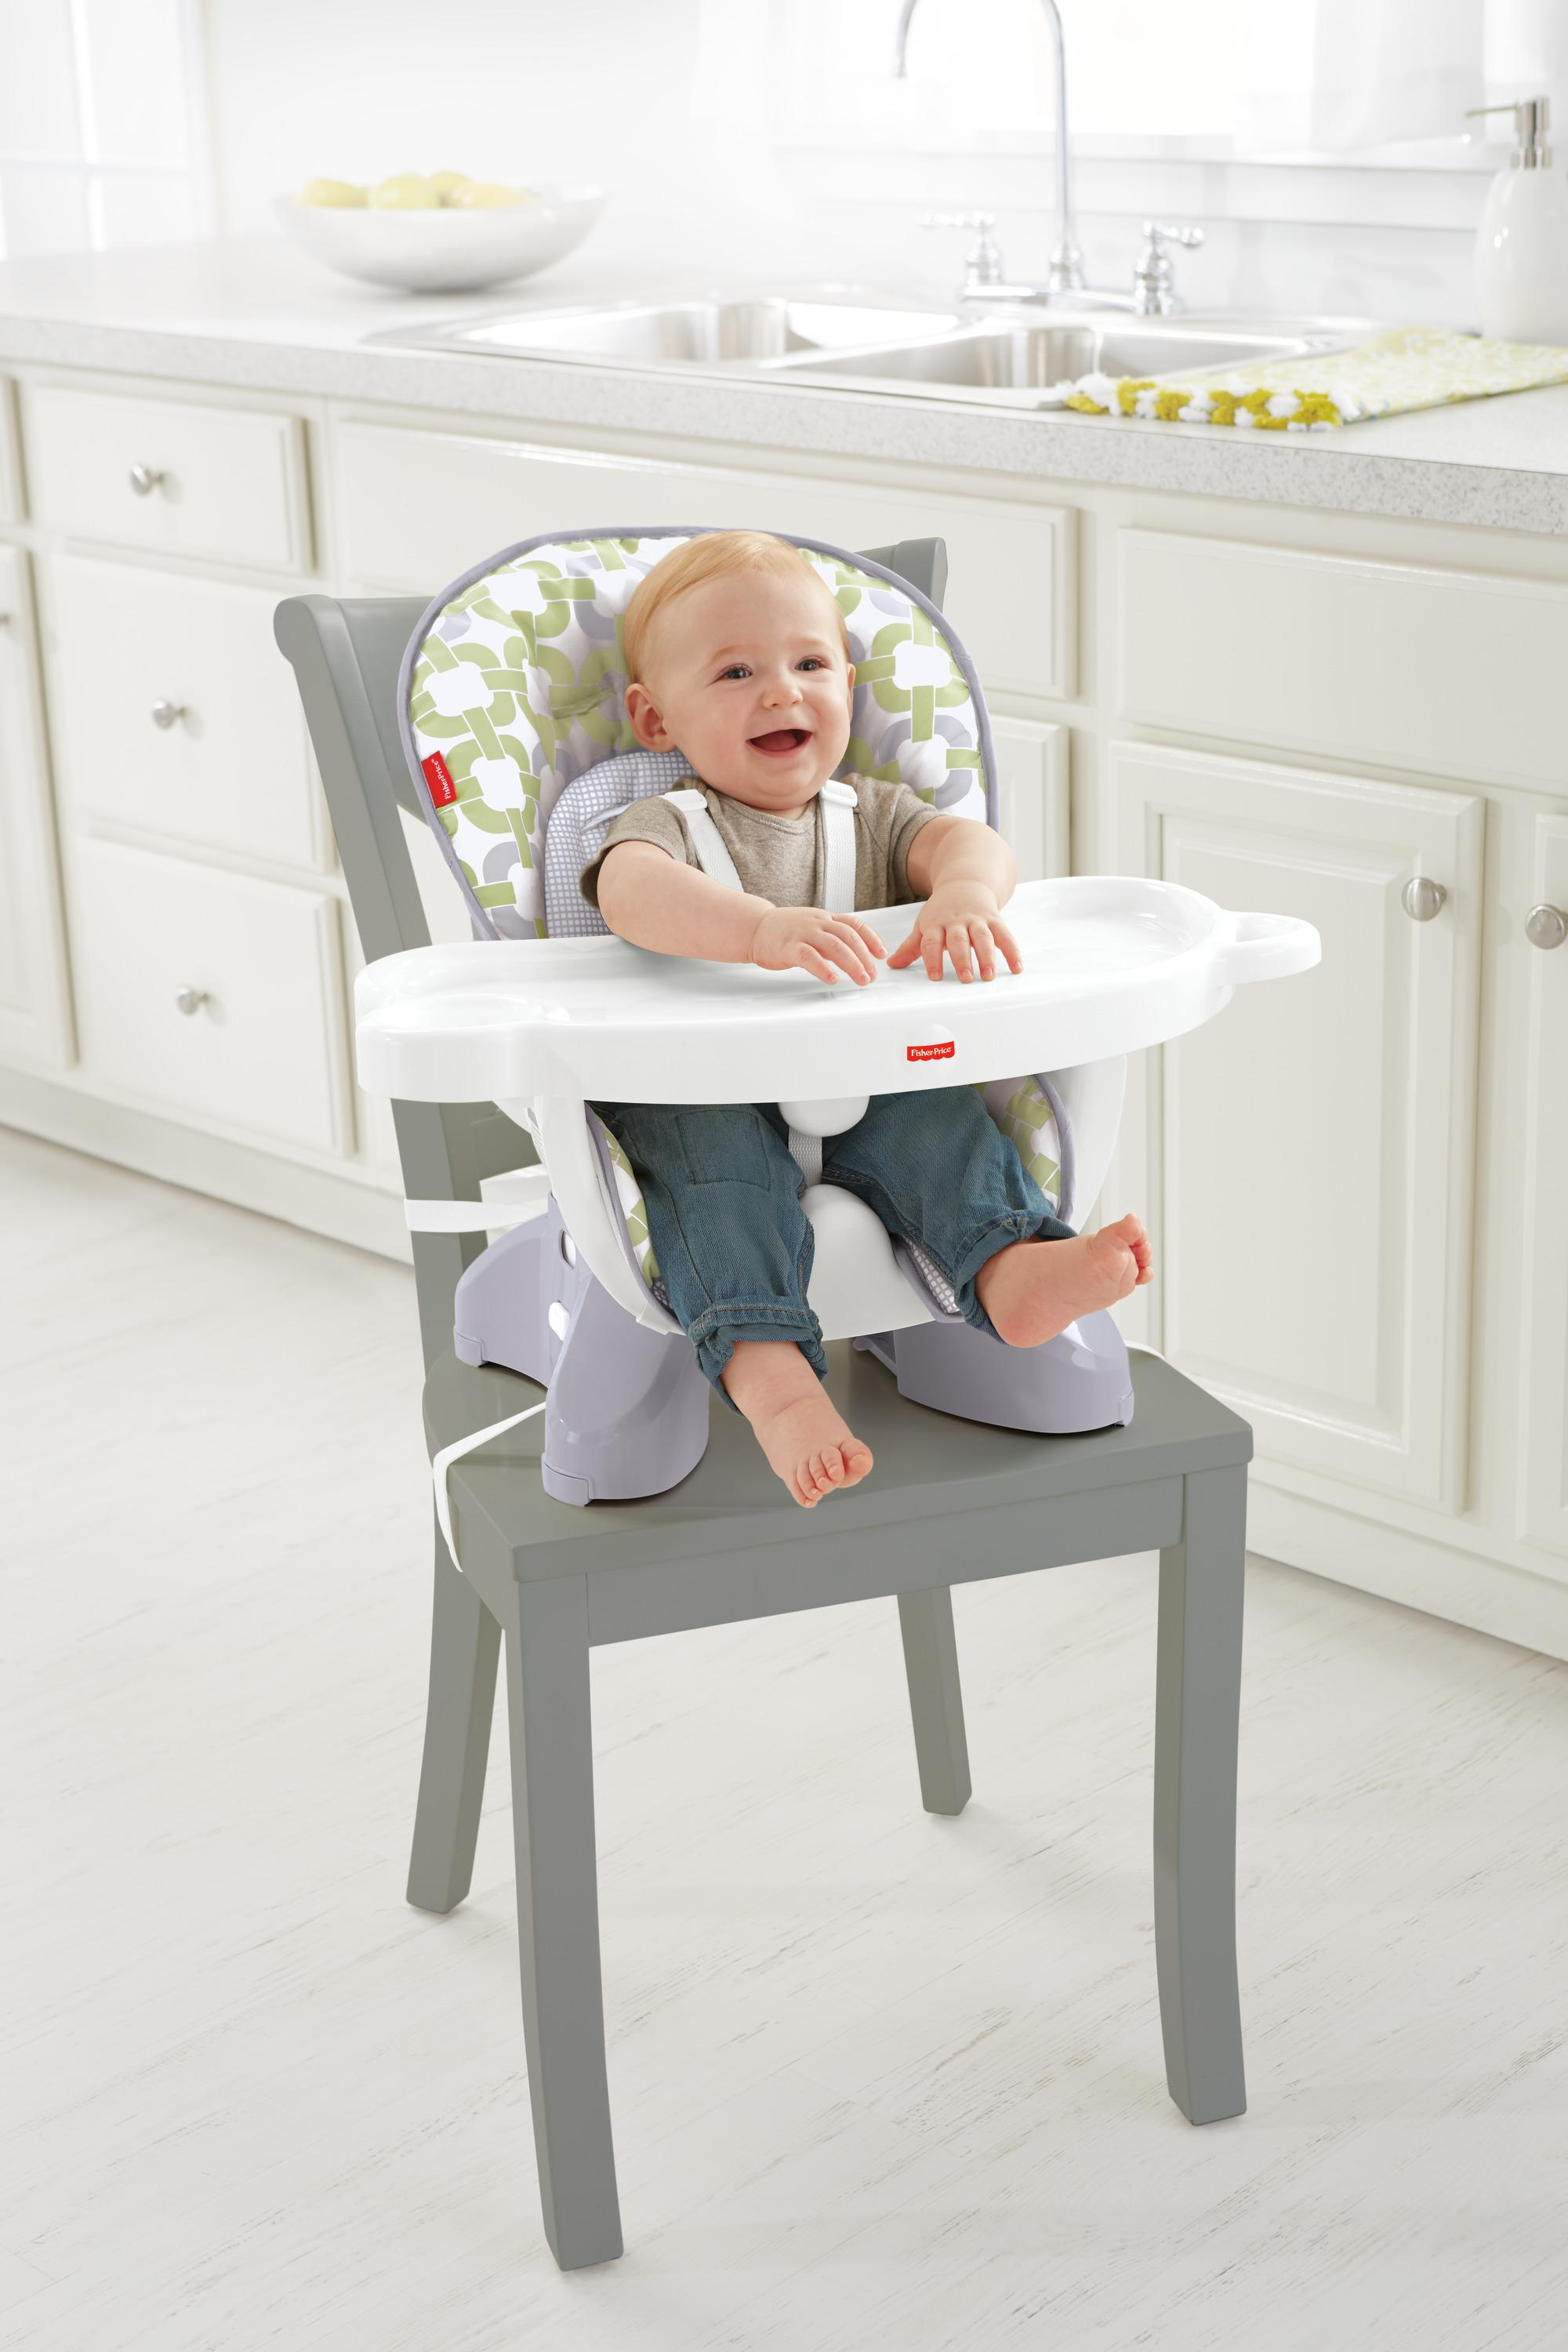 Fisher price space saver high chair baby - High chair for small spaces image ...